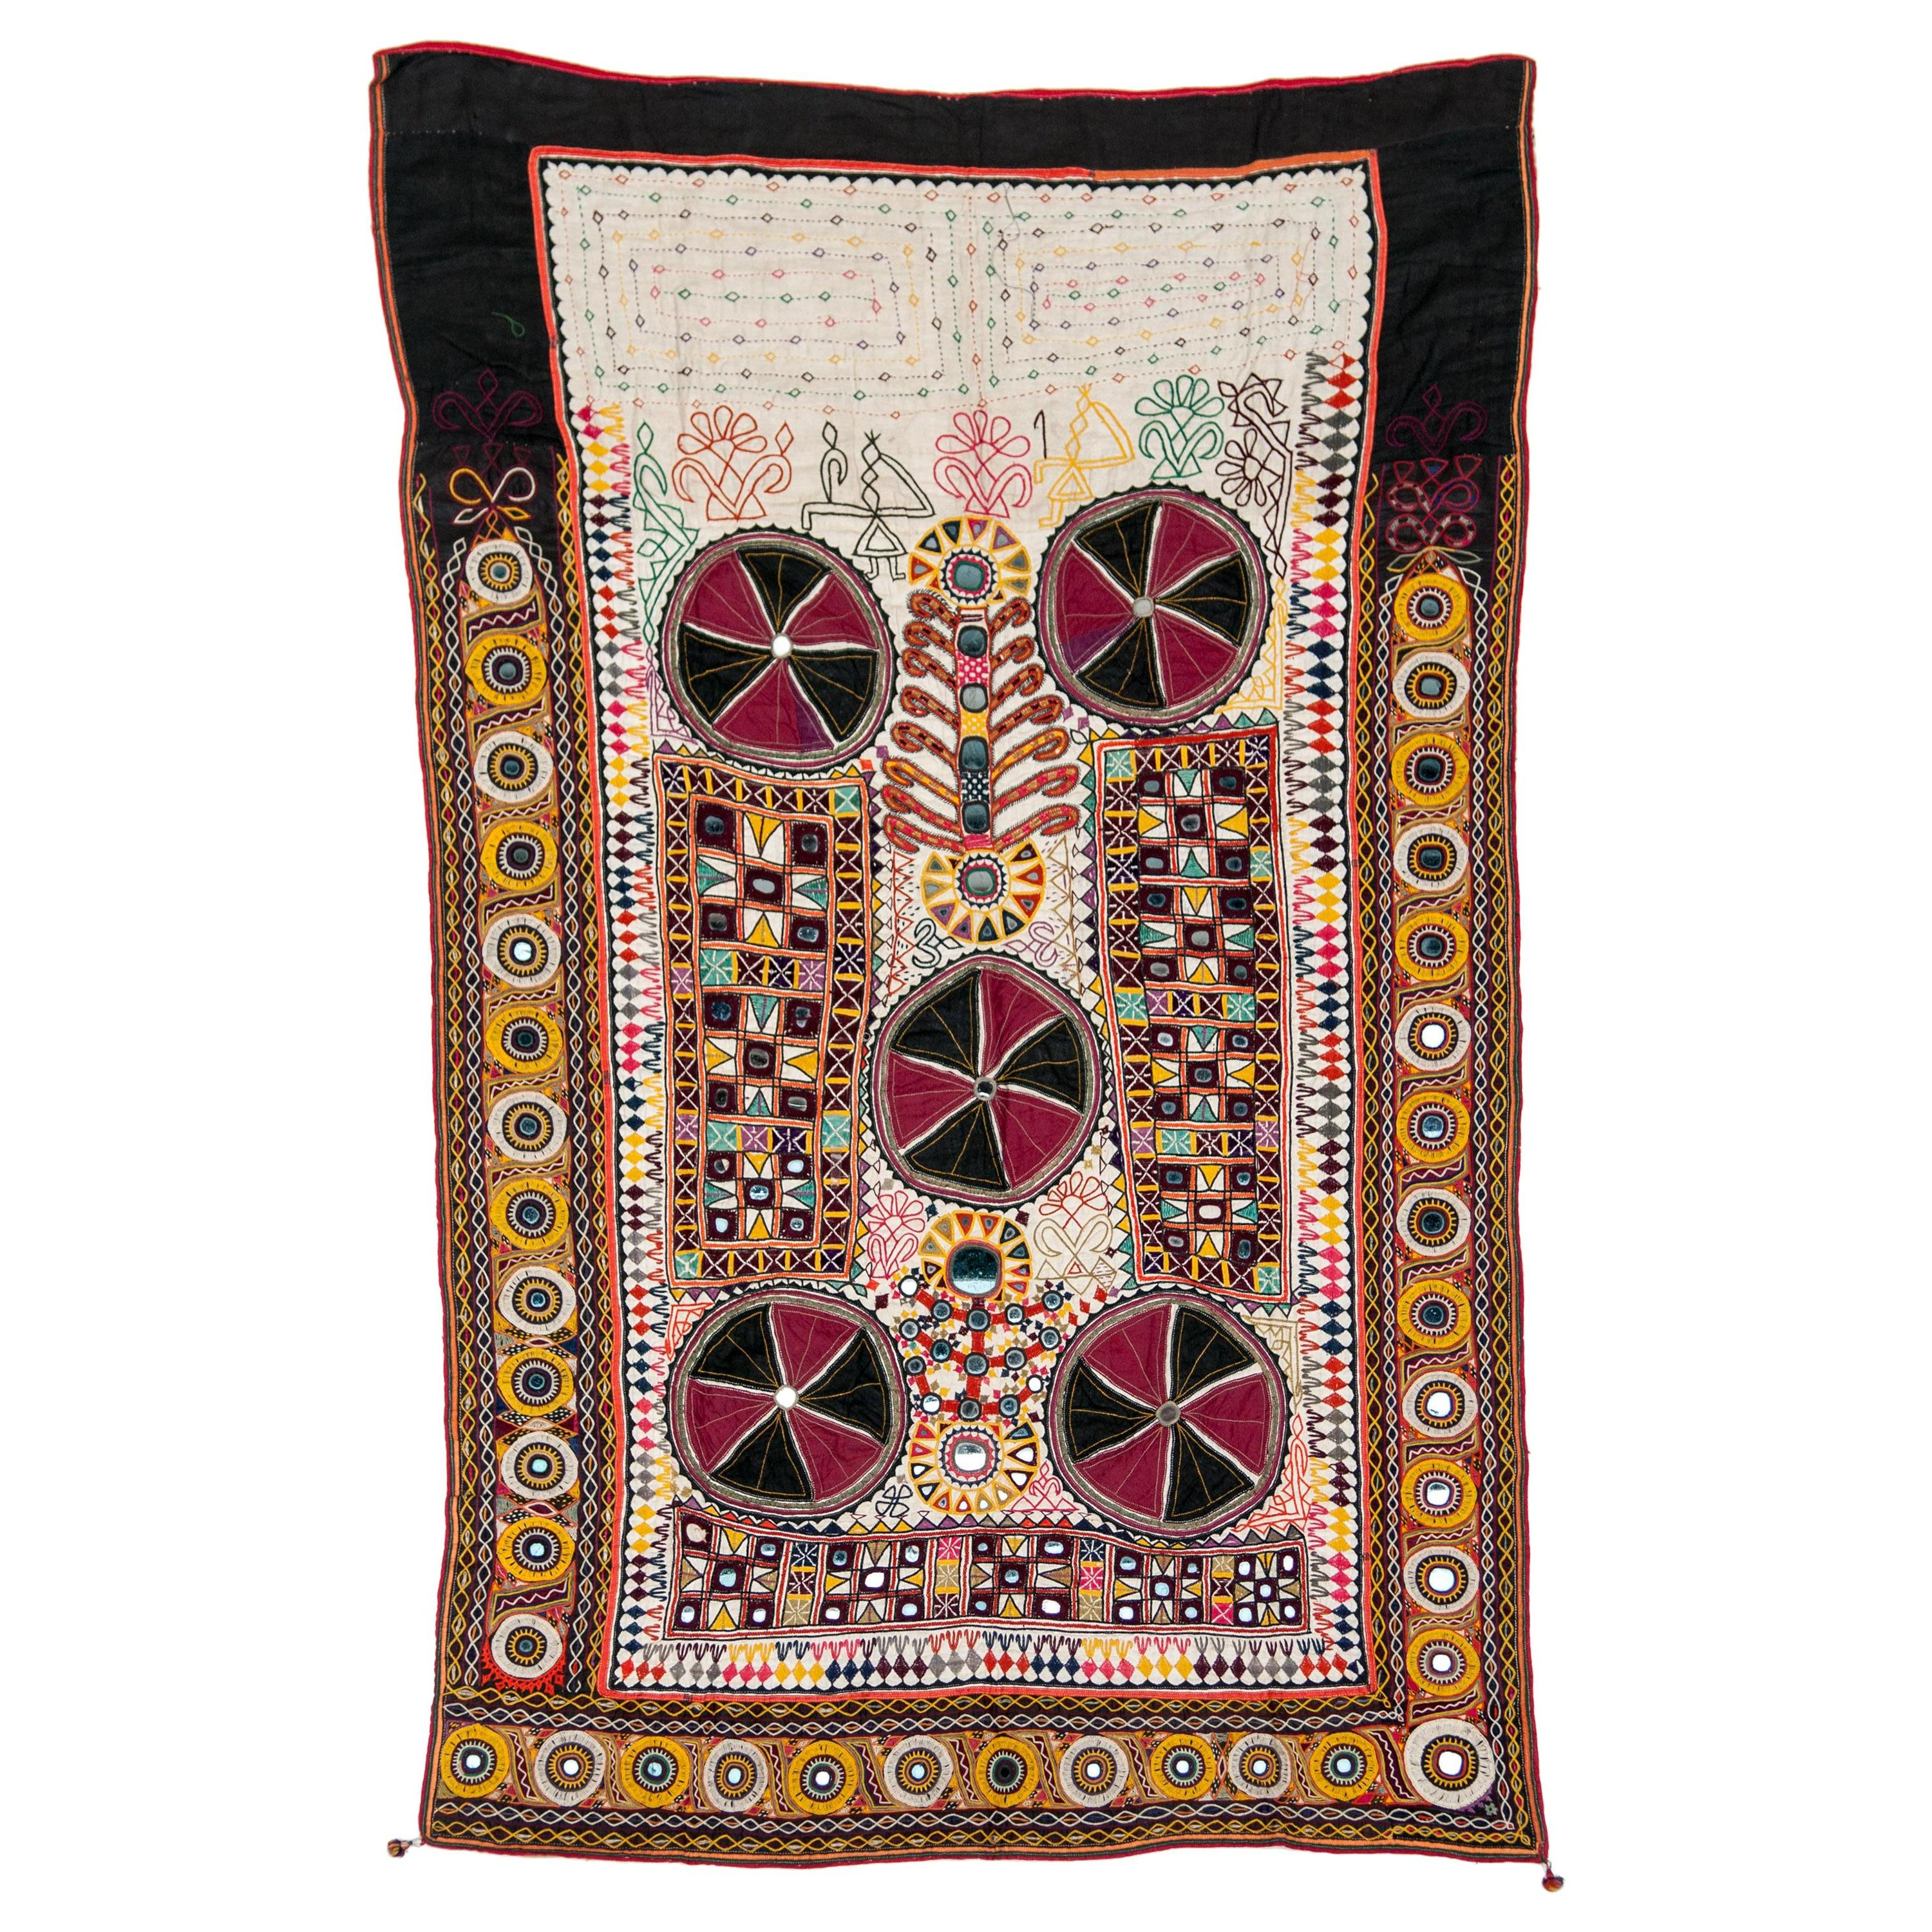 Vintage Rabari Embroidered Quilt Cover, Gujarat, India, Mid-20th Century